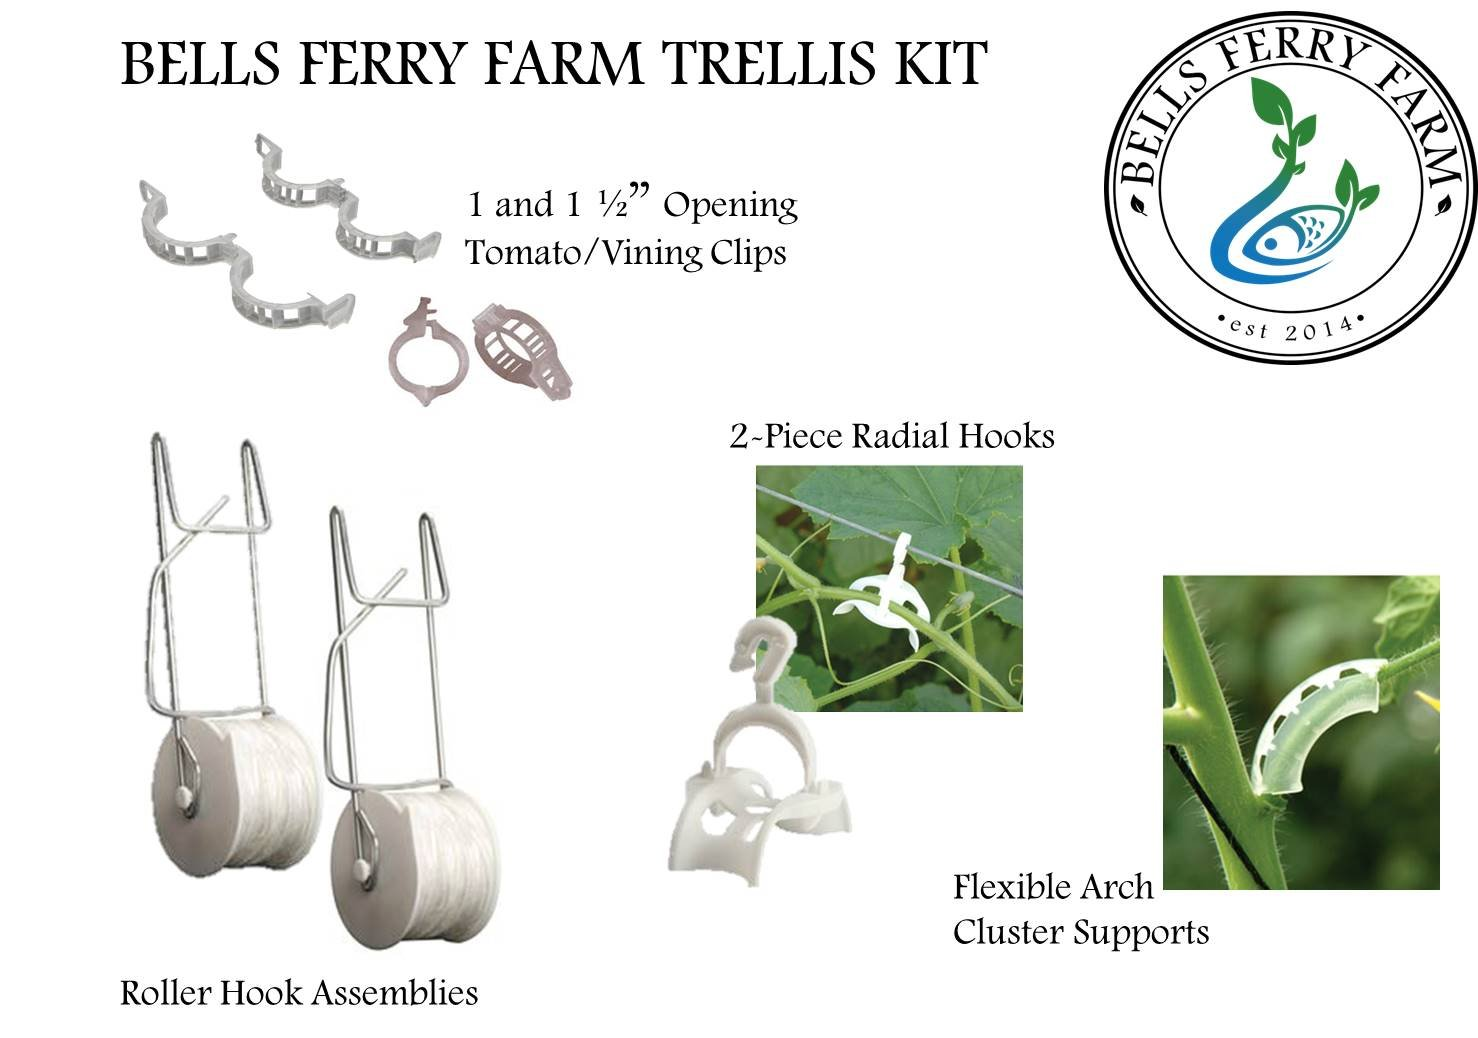 Bells Ferry Farm Trellis Kit: For Vining Plants - Rollerhook Assembly, Clips for Tomatoes, Cucumbers etc plus and more! - 6 Pack